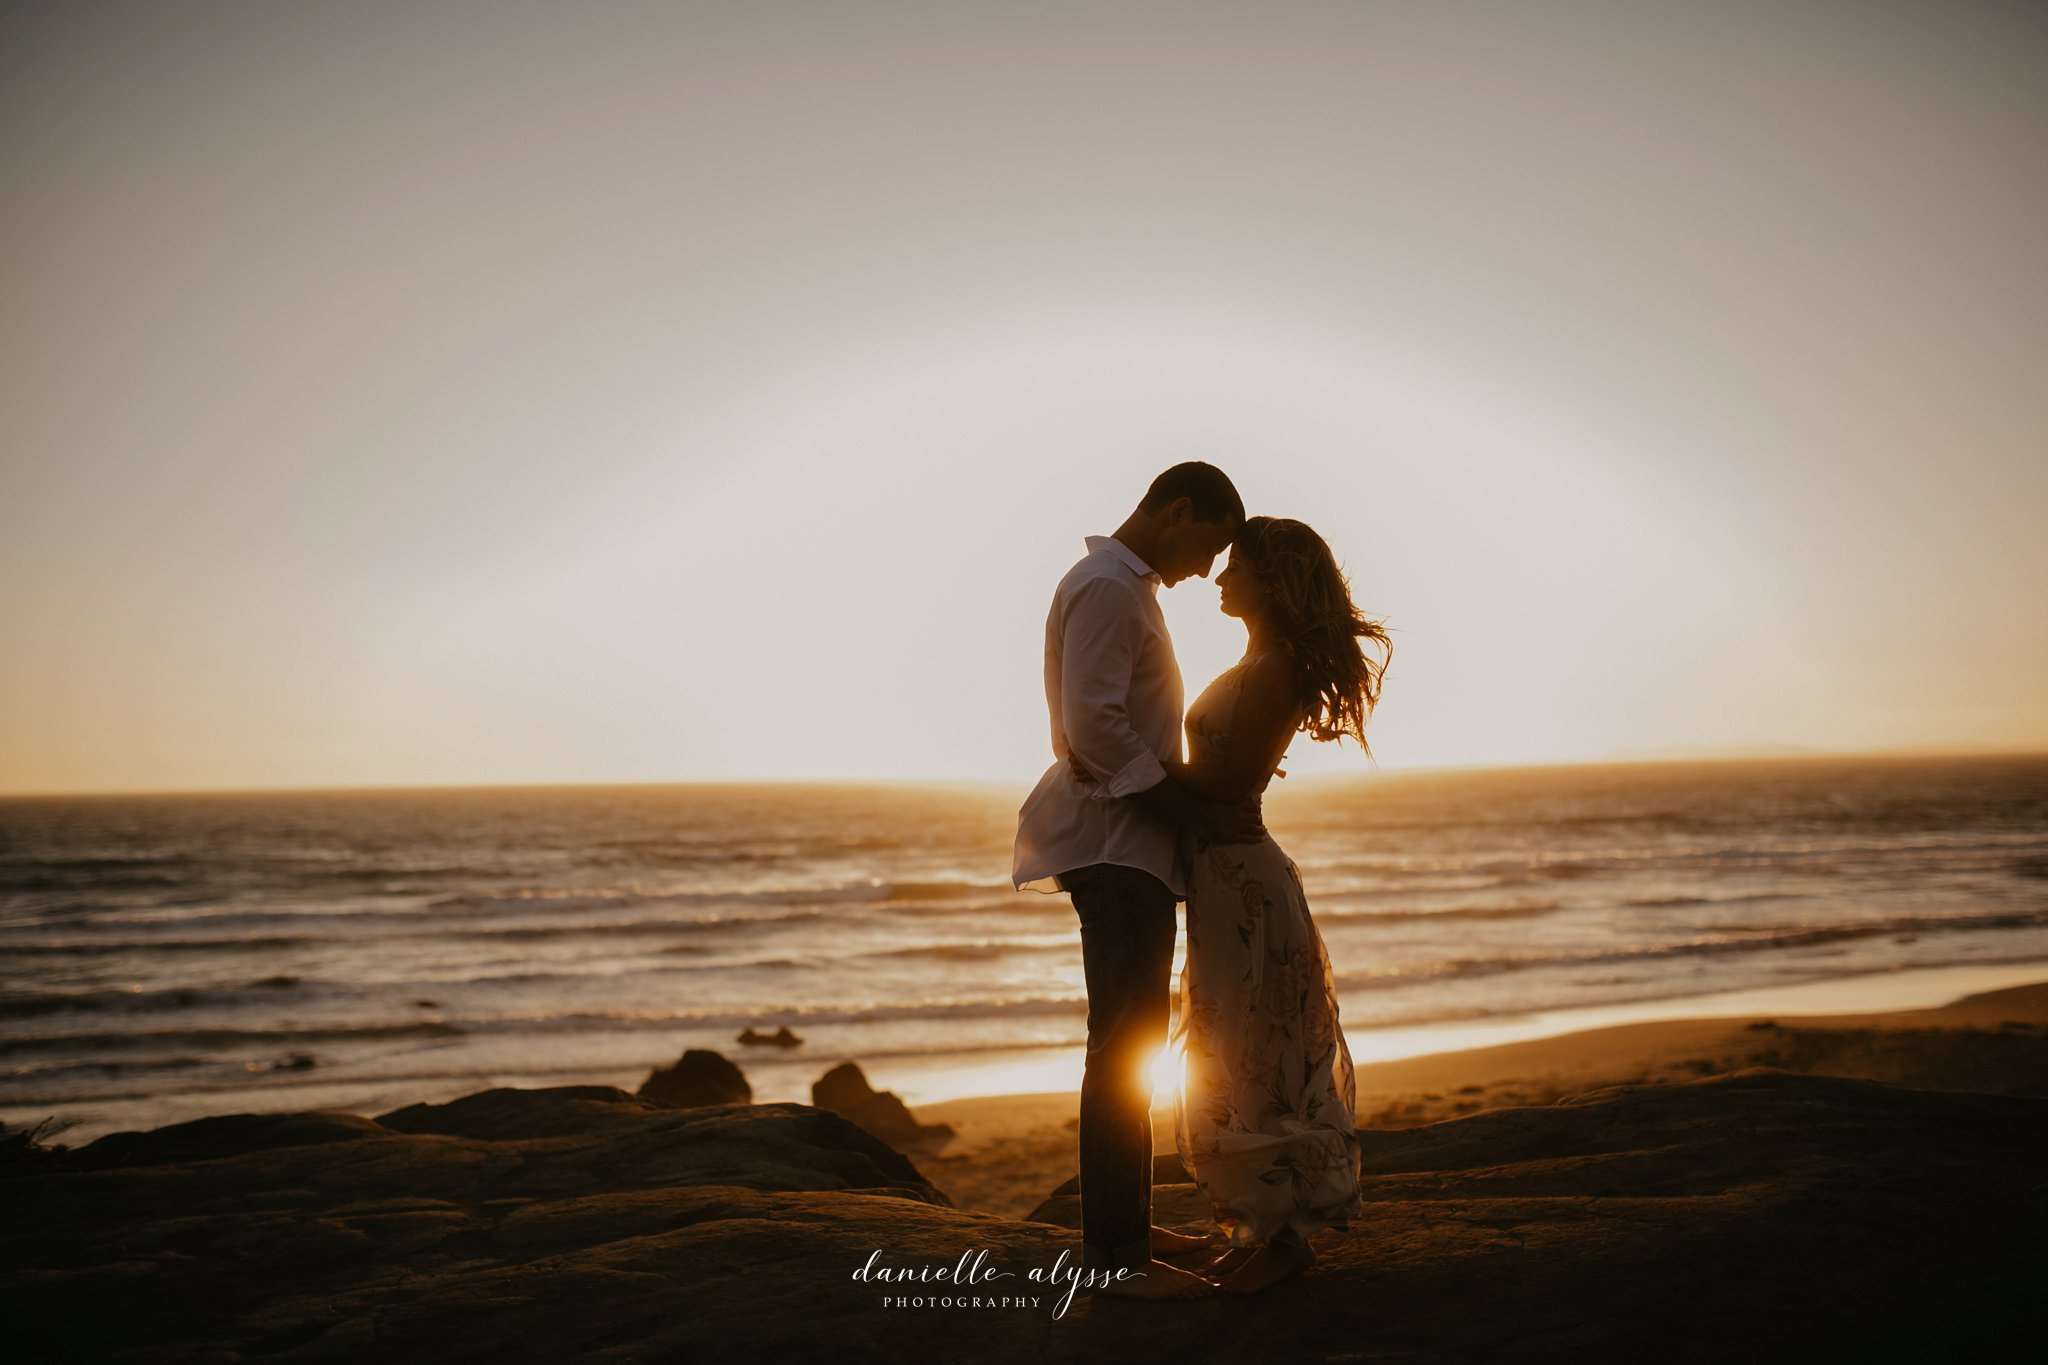 180804_engagement_katie_matt_dillon_beach_napa_danielle_alysse_photography_blog_68_WEB.jpg